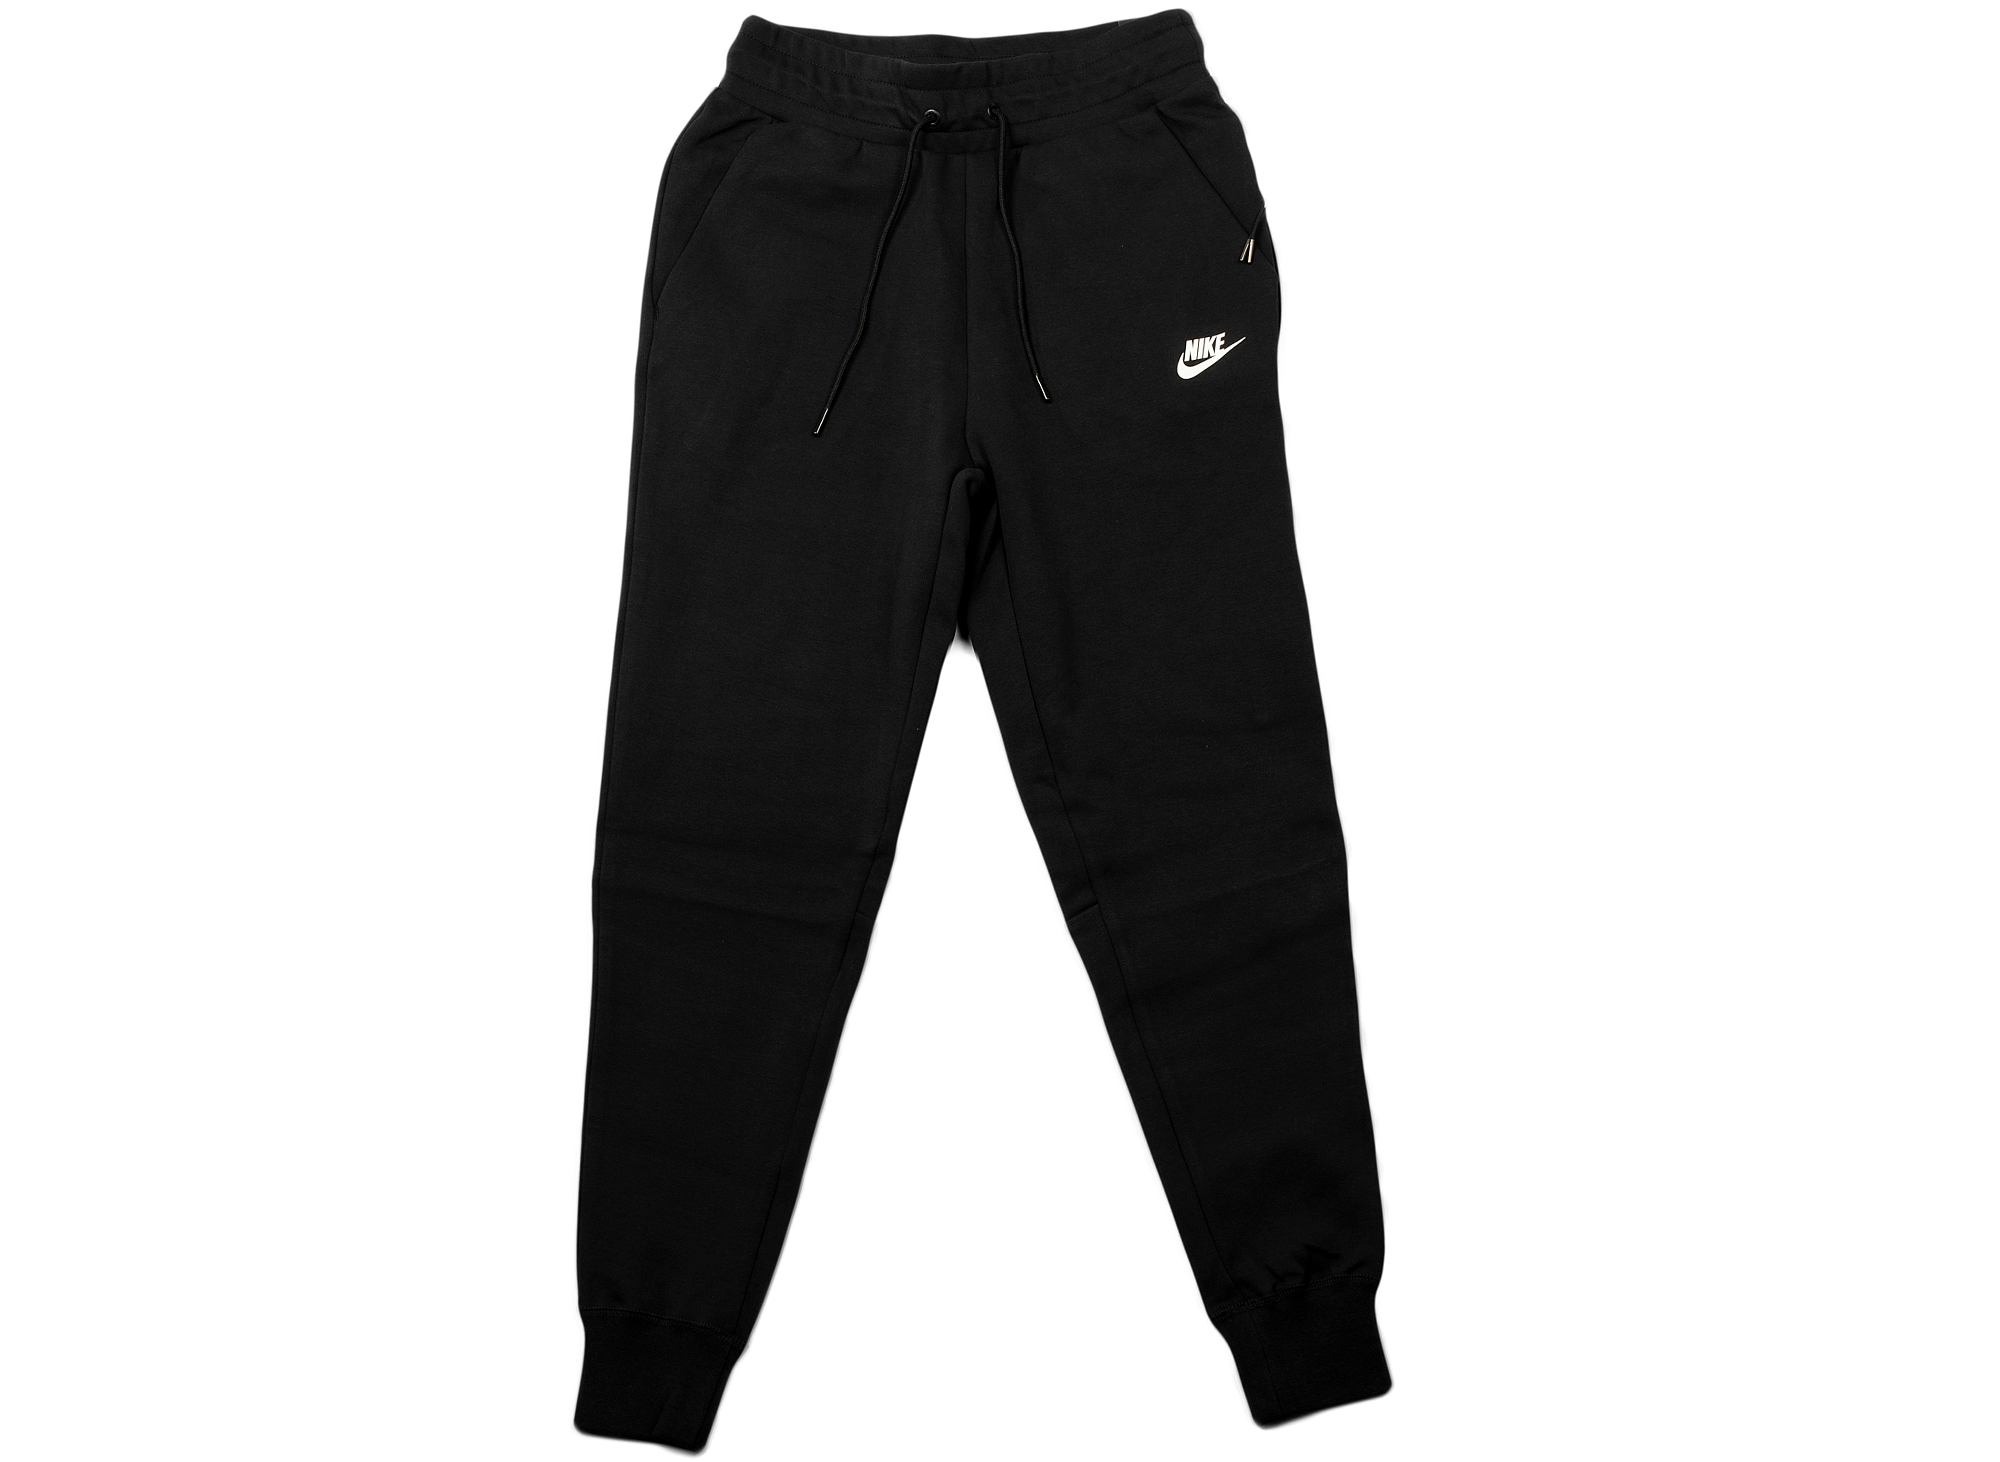 Nike Joggers Black Womens Shop Clothing Shoes Online